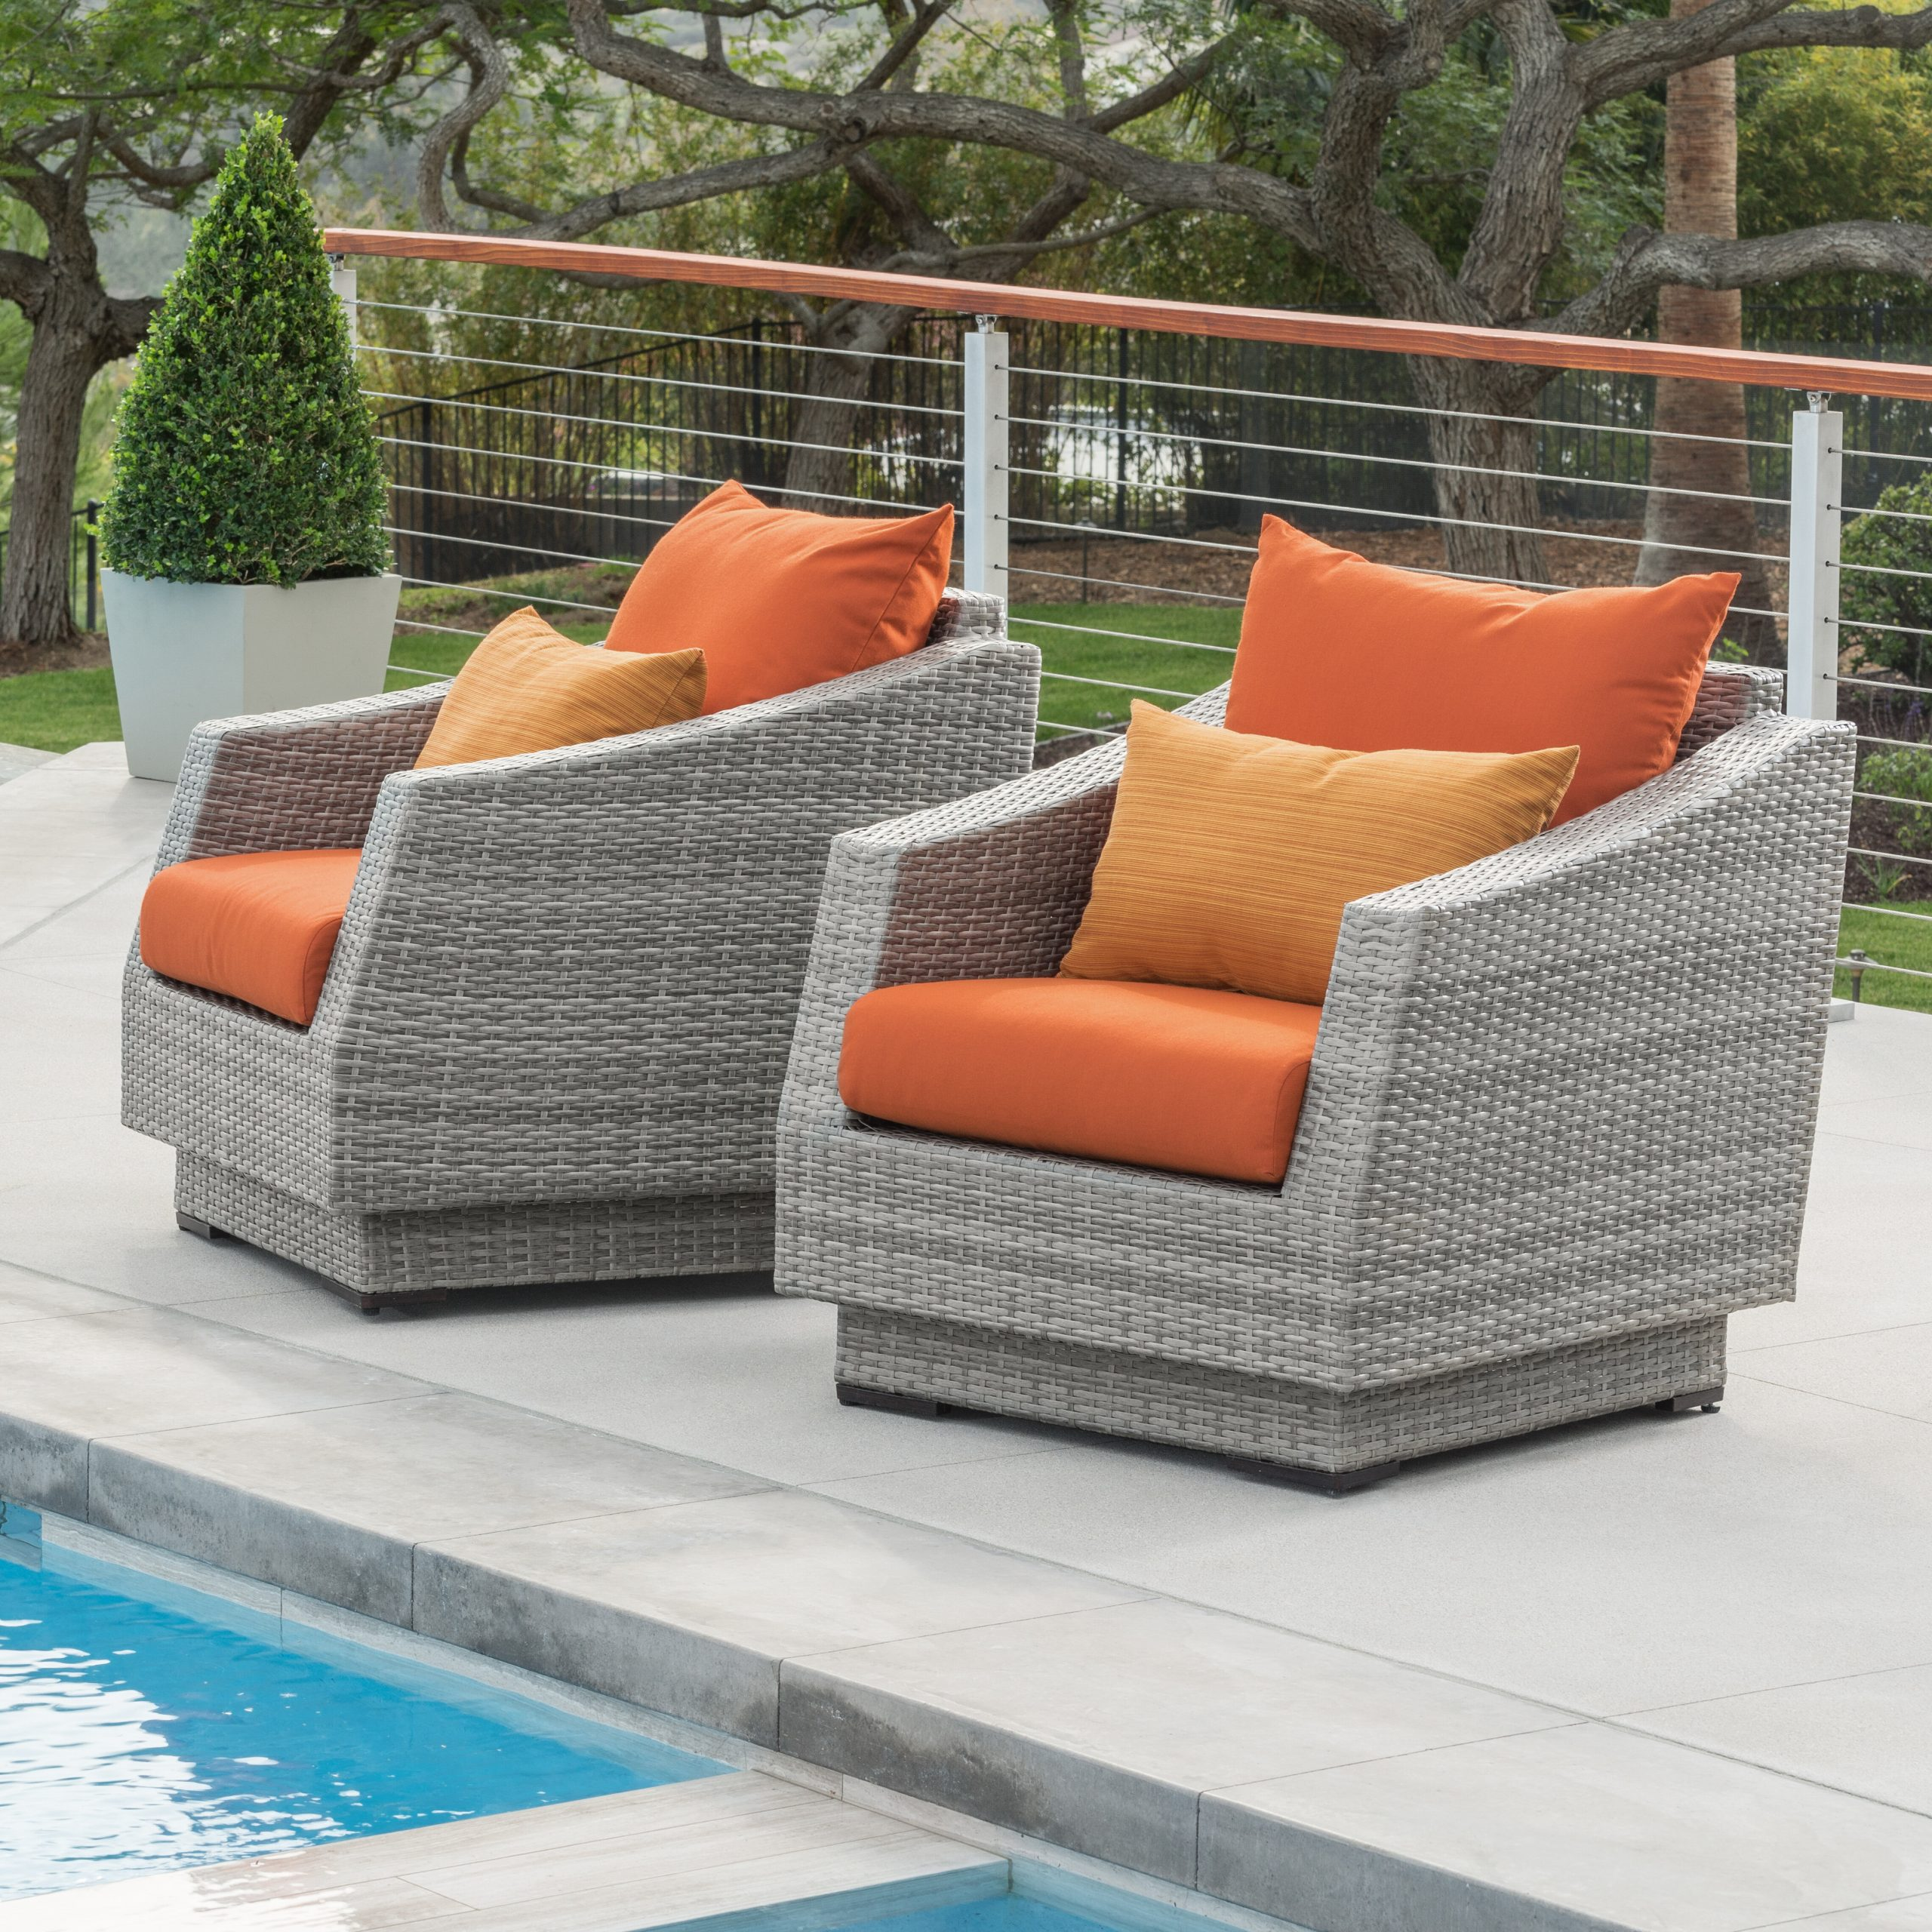 Current Kincaid Teak Patio Sofas With Sunbrella Cushions With Castelli Patio Chair With Sunbrella Cushions (View 8 of 25)